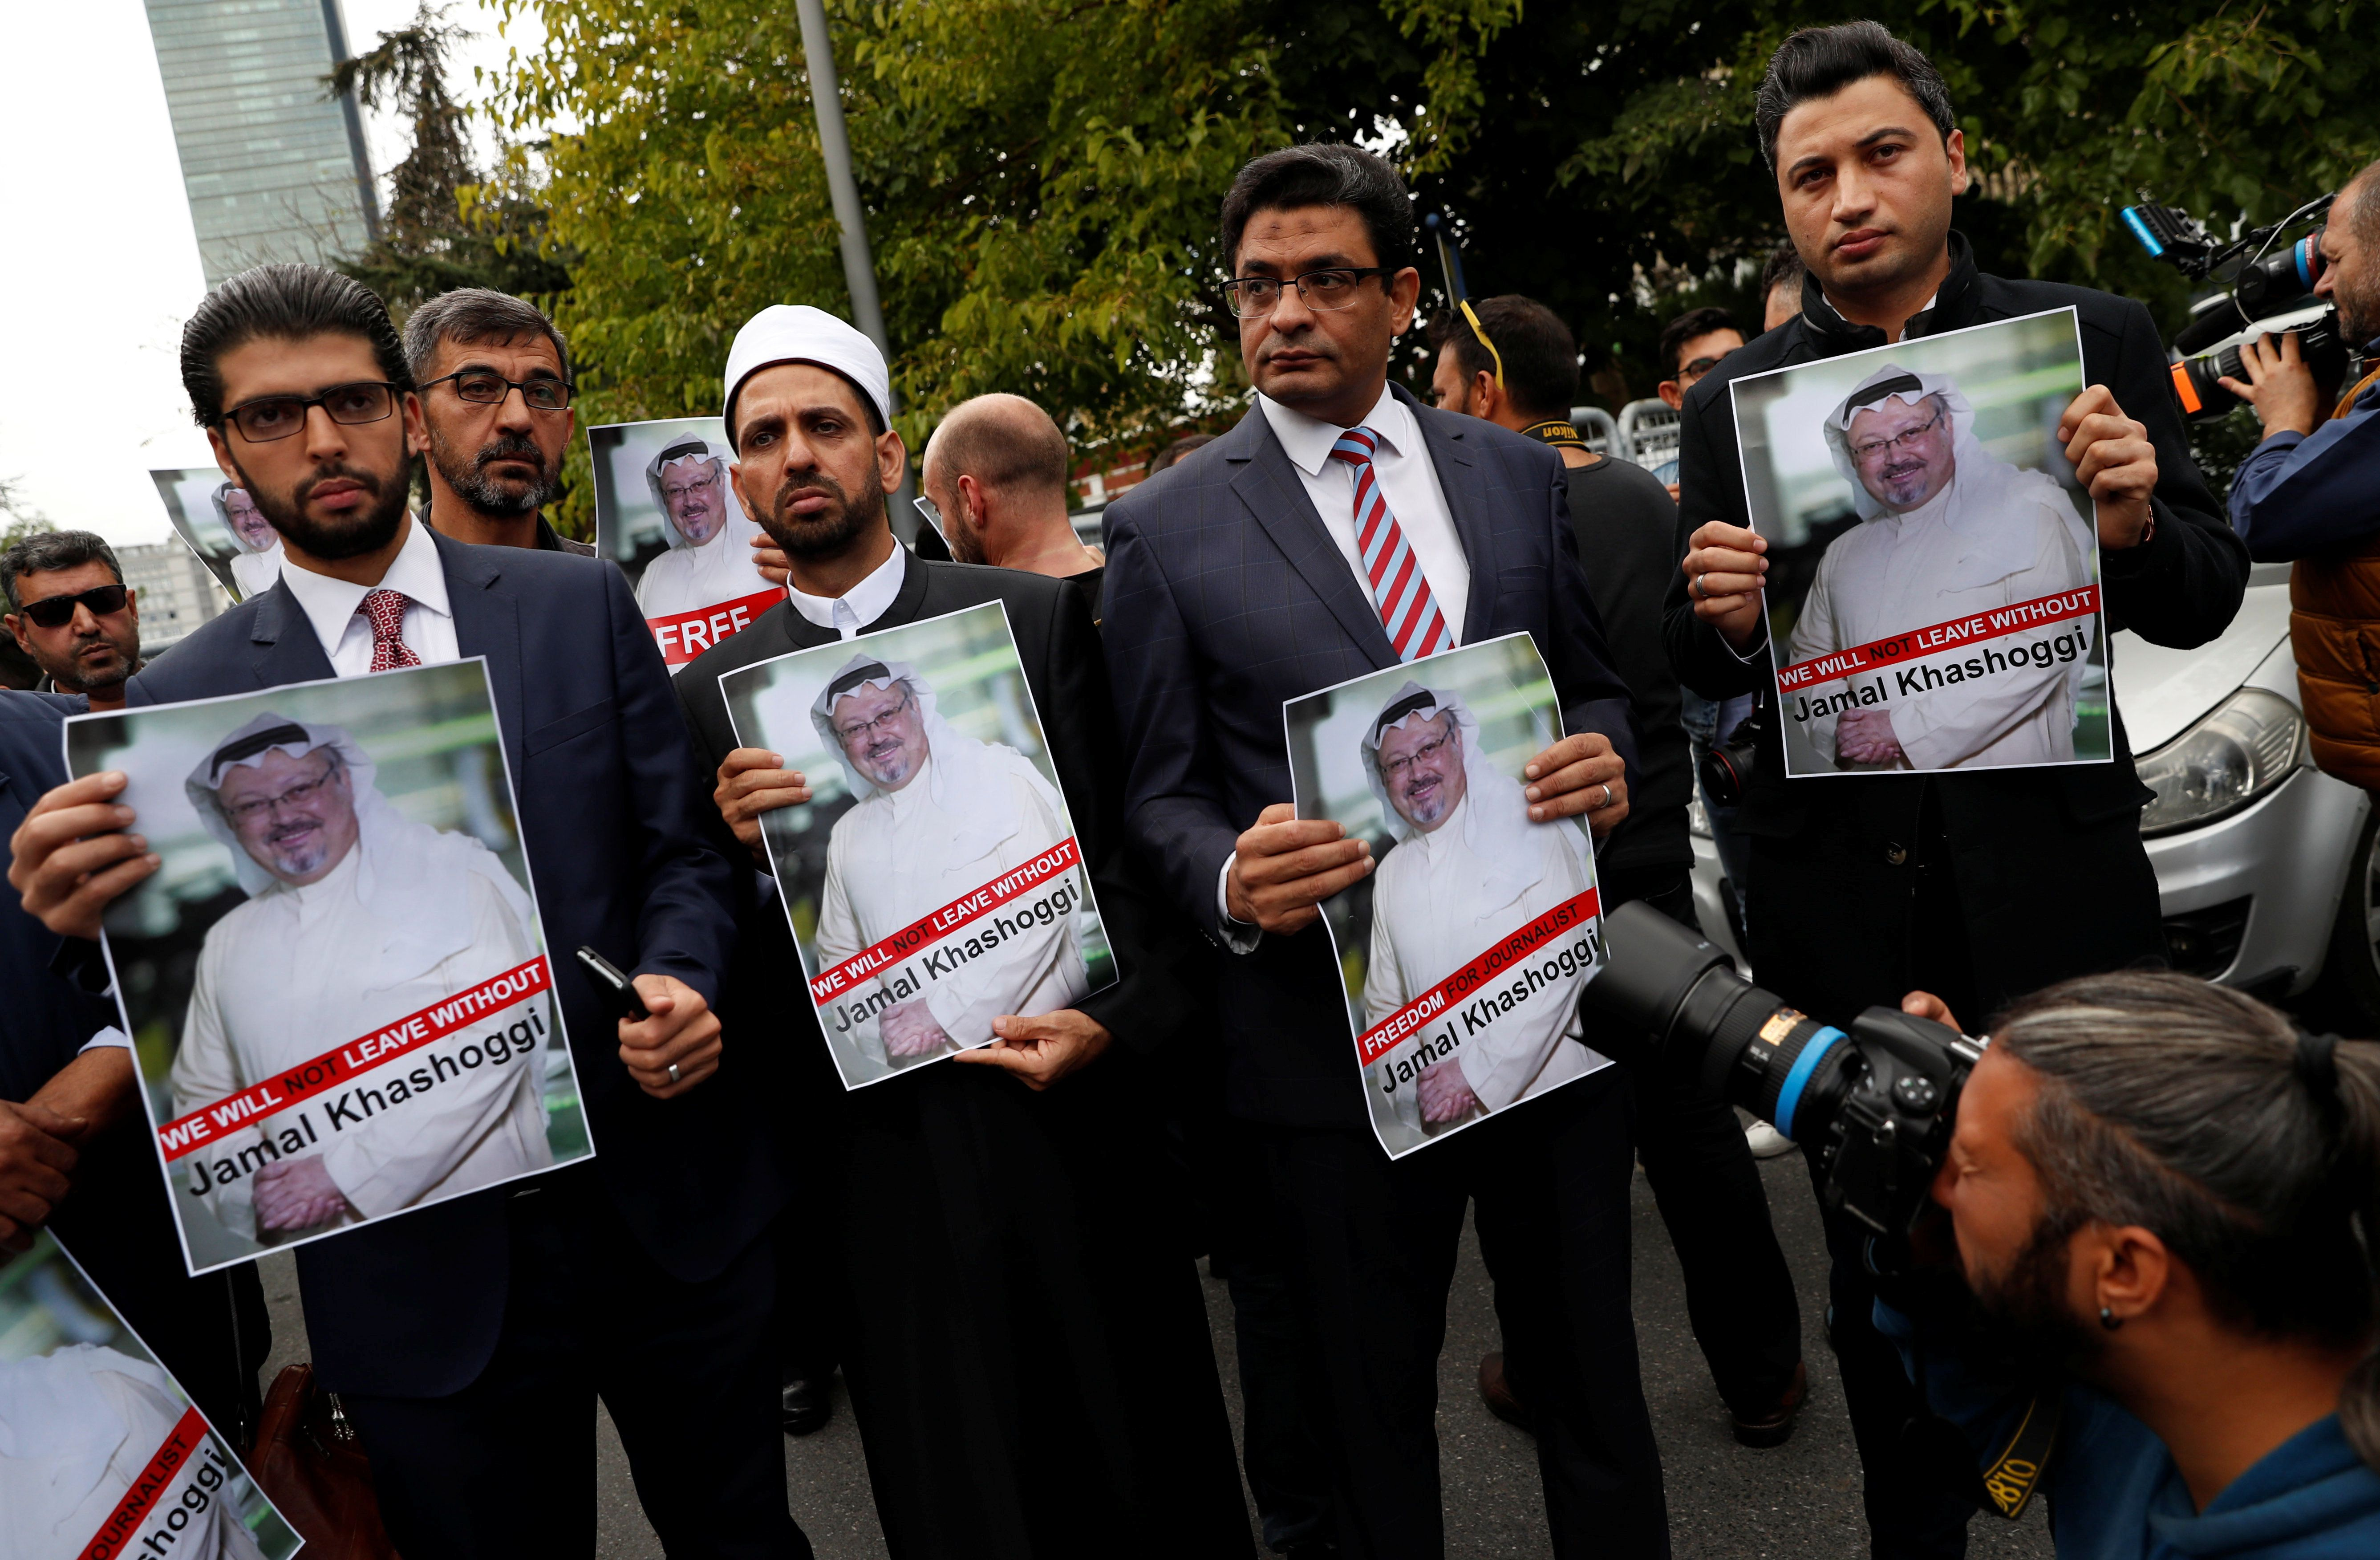 The mysterious case of the missing Saudi journalist